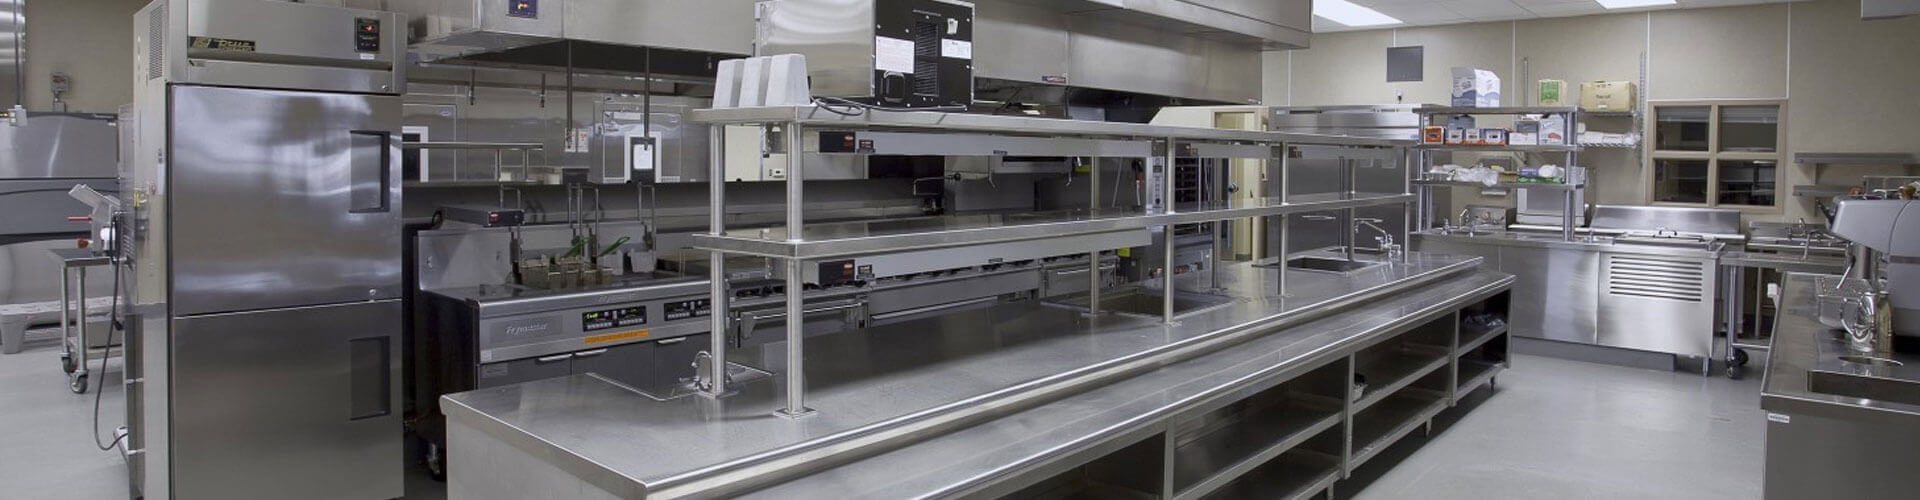 Commercial Kitchen Deep Cleaning - Kempston Cleaning